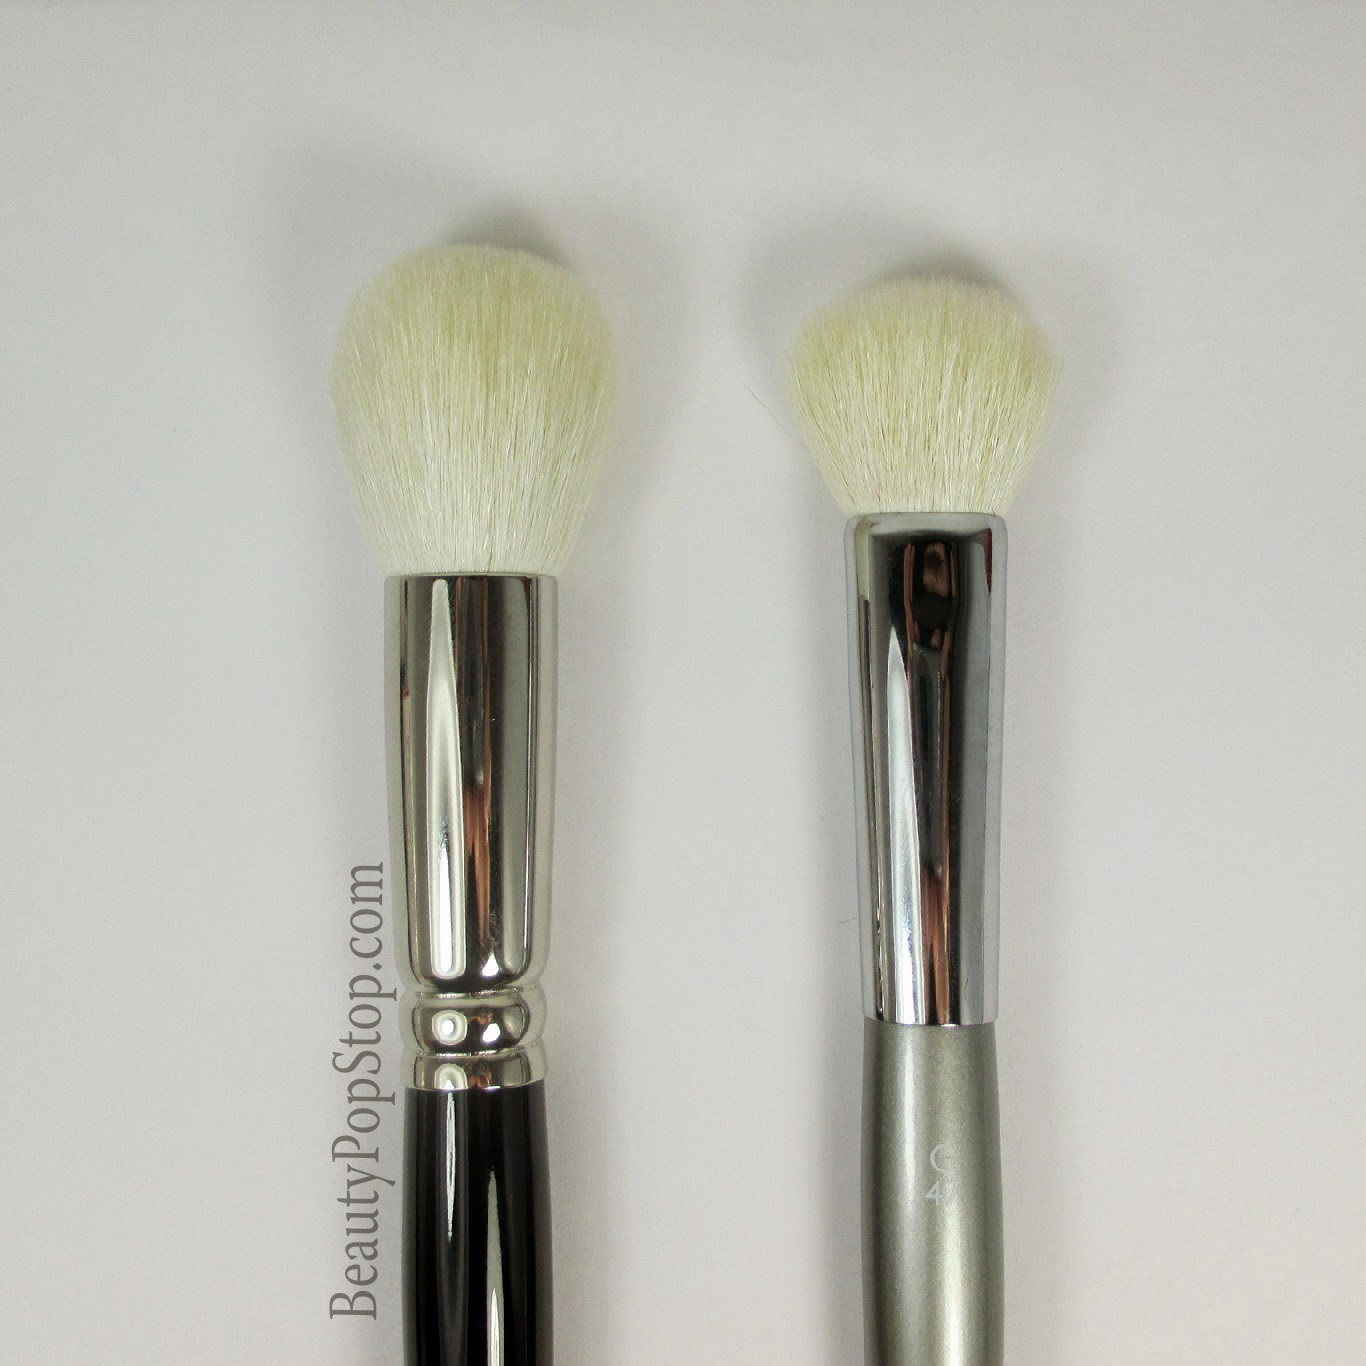 hakuhodo j210 vs esum g47 japanese makeup brush comparison